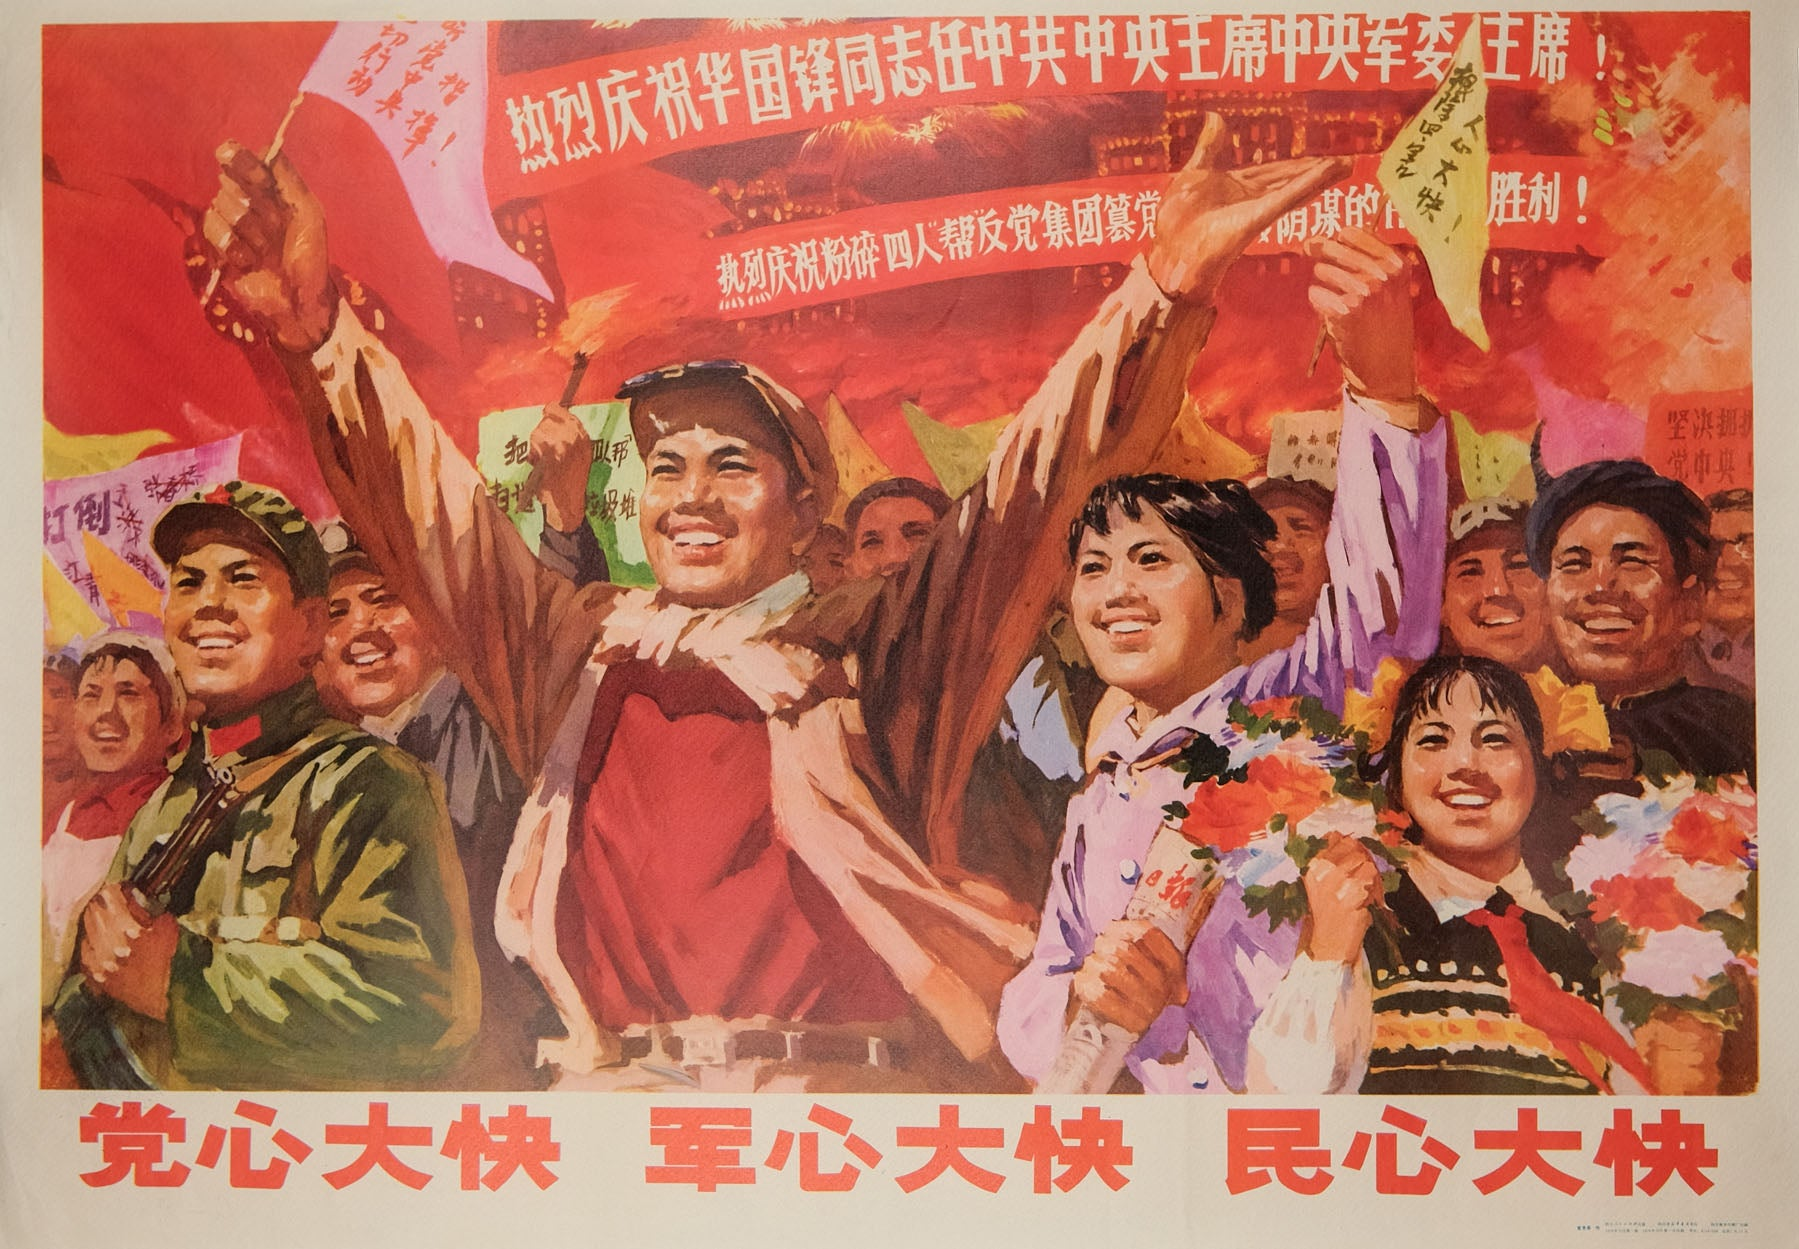 image of the original vintage 1976 Chinese communist propaganda poster by Xia Kehong titled Happy Party, happy army, happy people published by Sichuan People's Publishing House